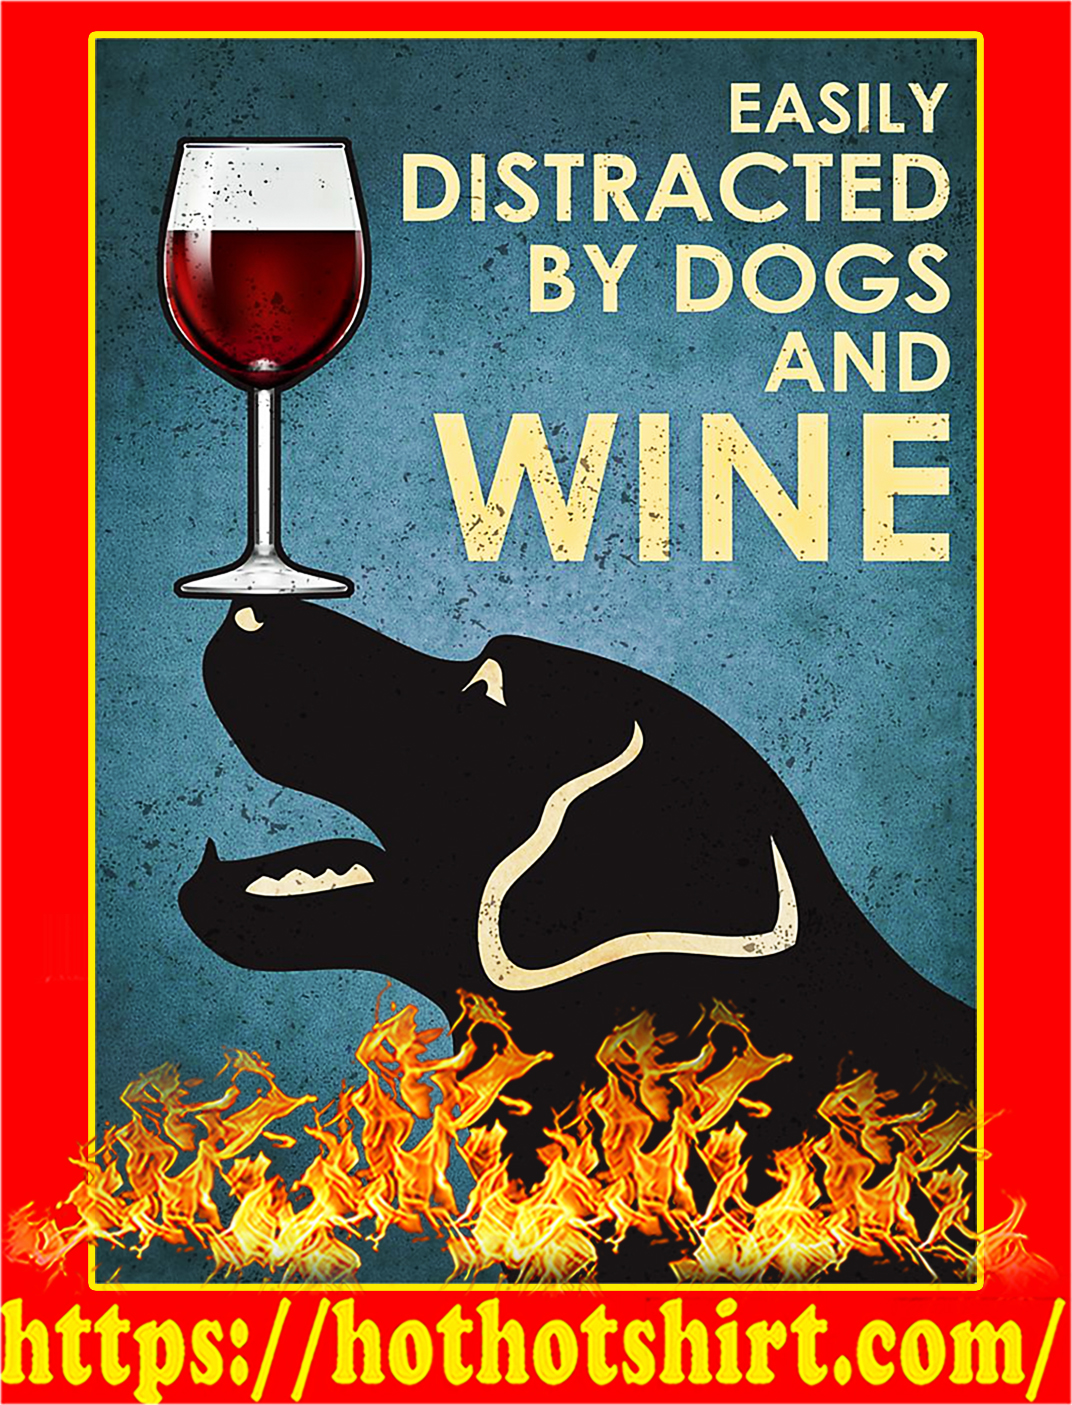 Easily distracted by dogs and wine poster - A2